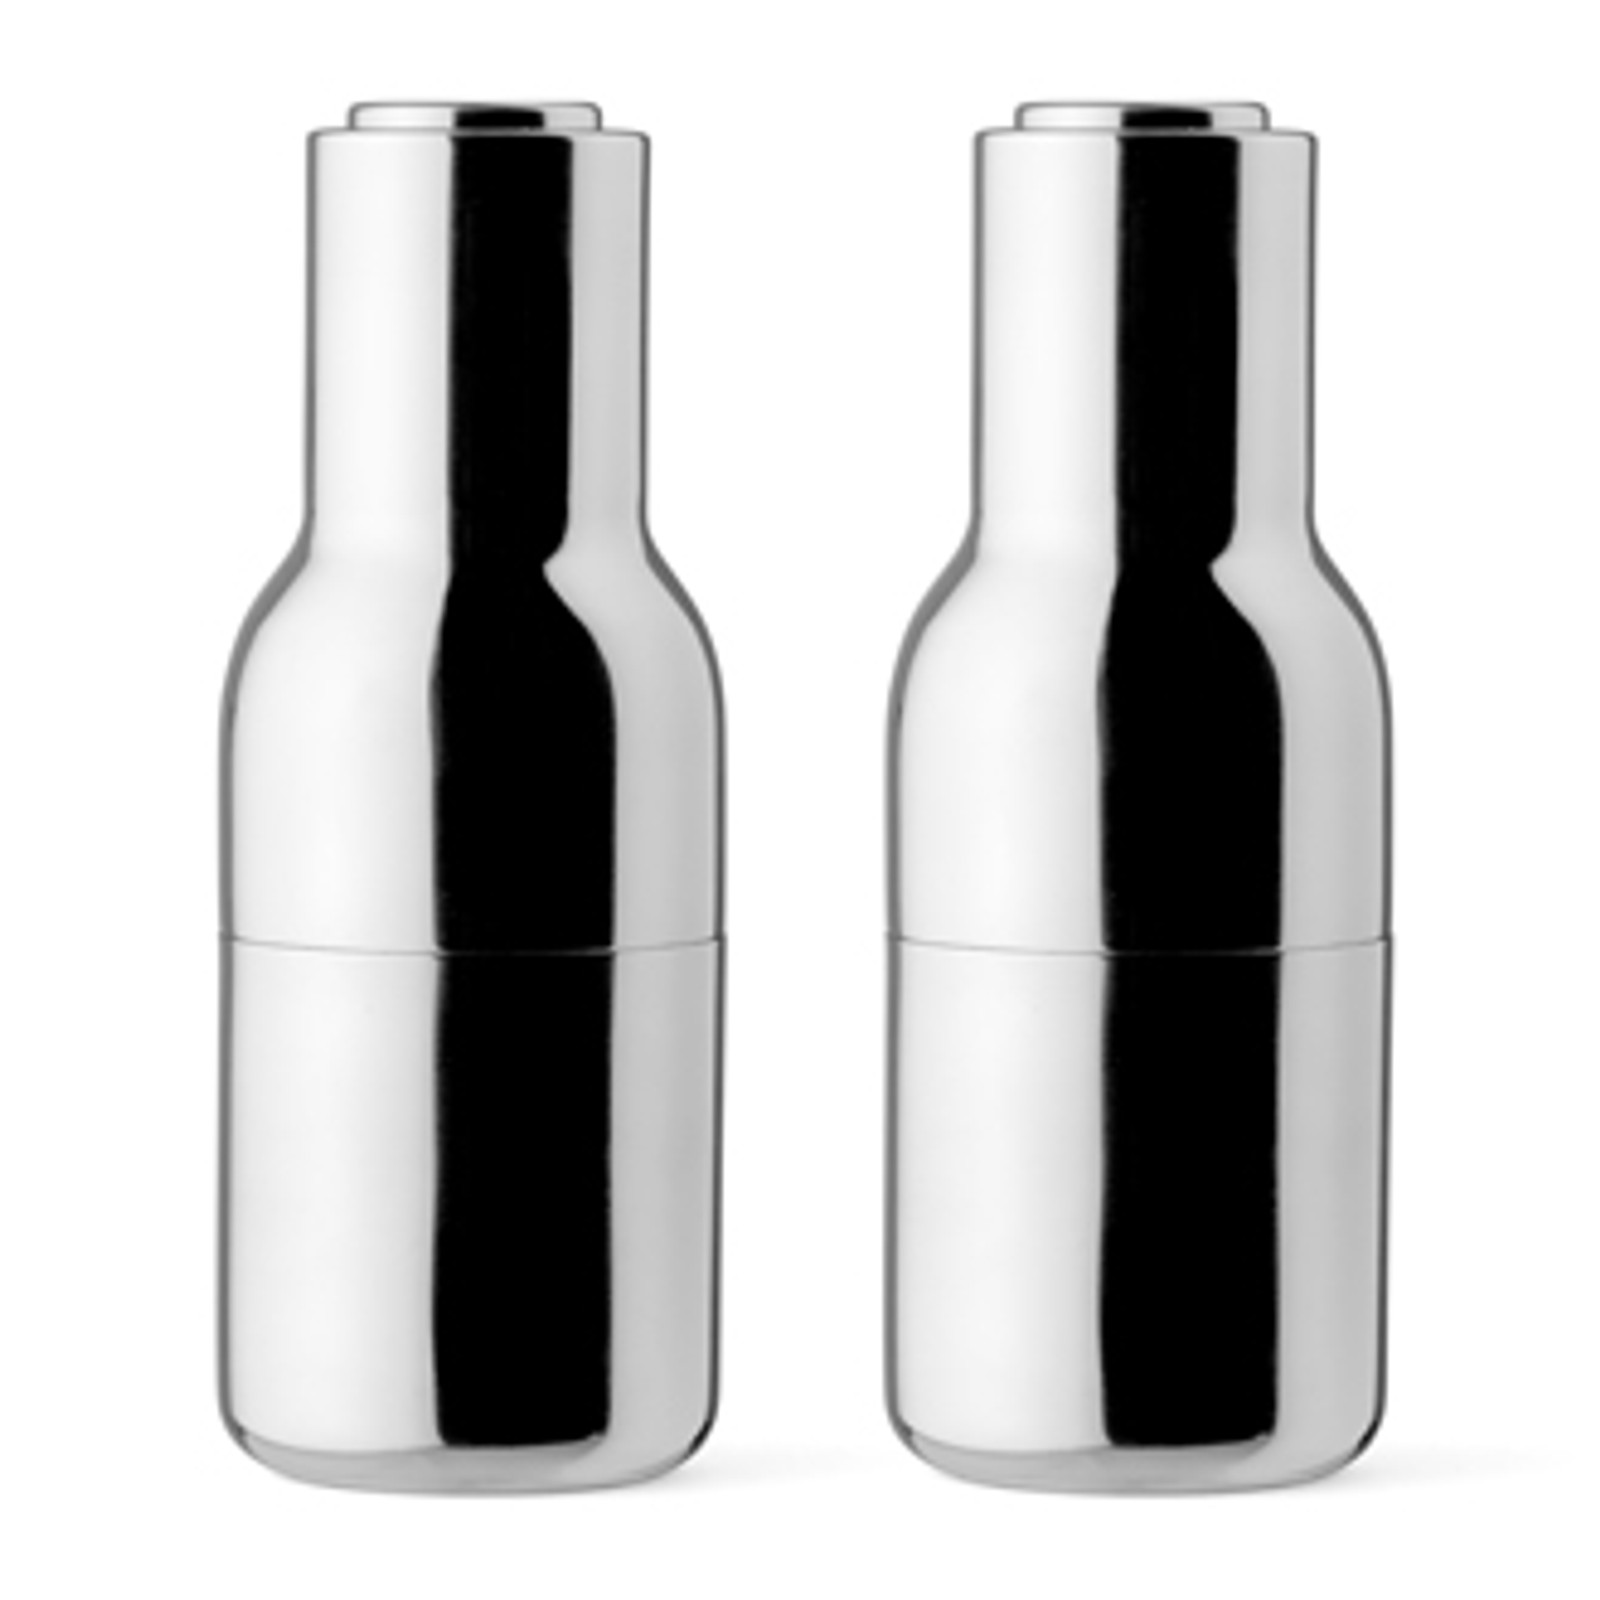 New Norm Bottle Grinder set - Mirror Steel